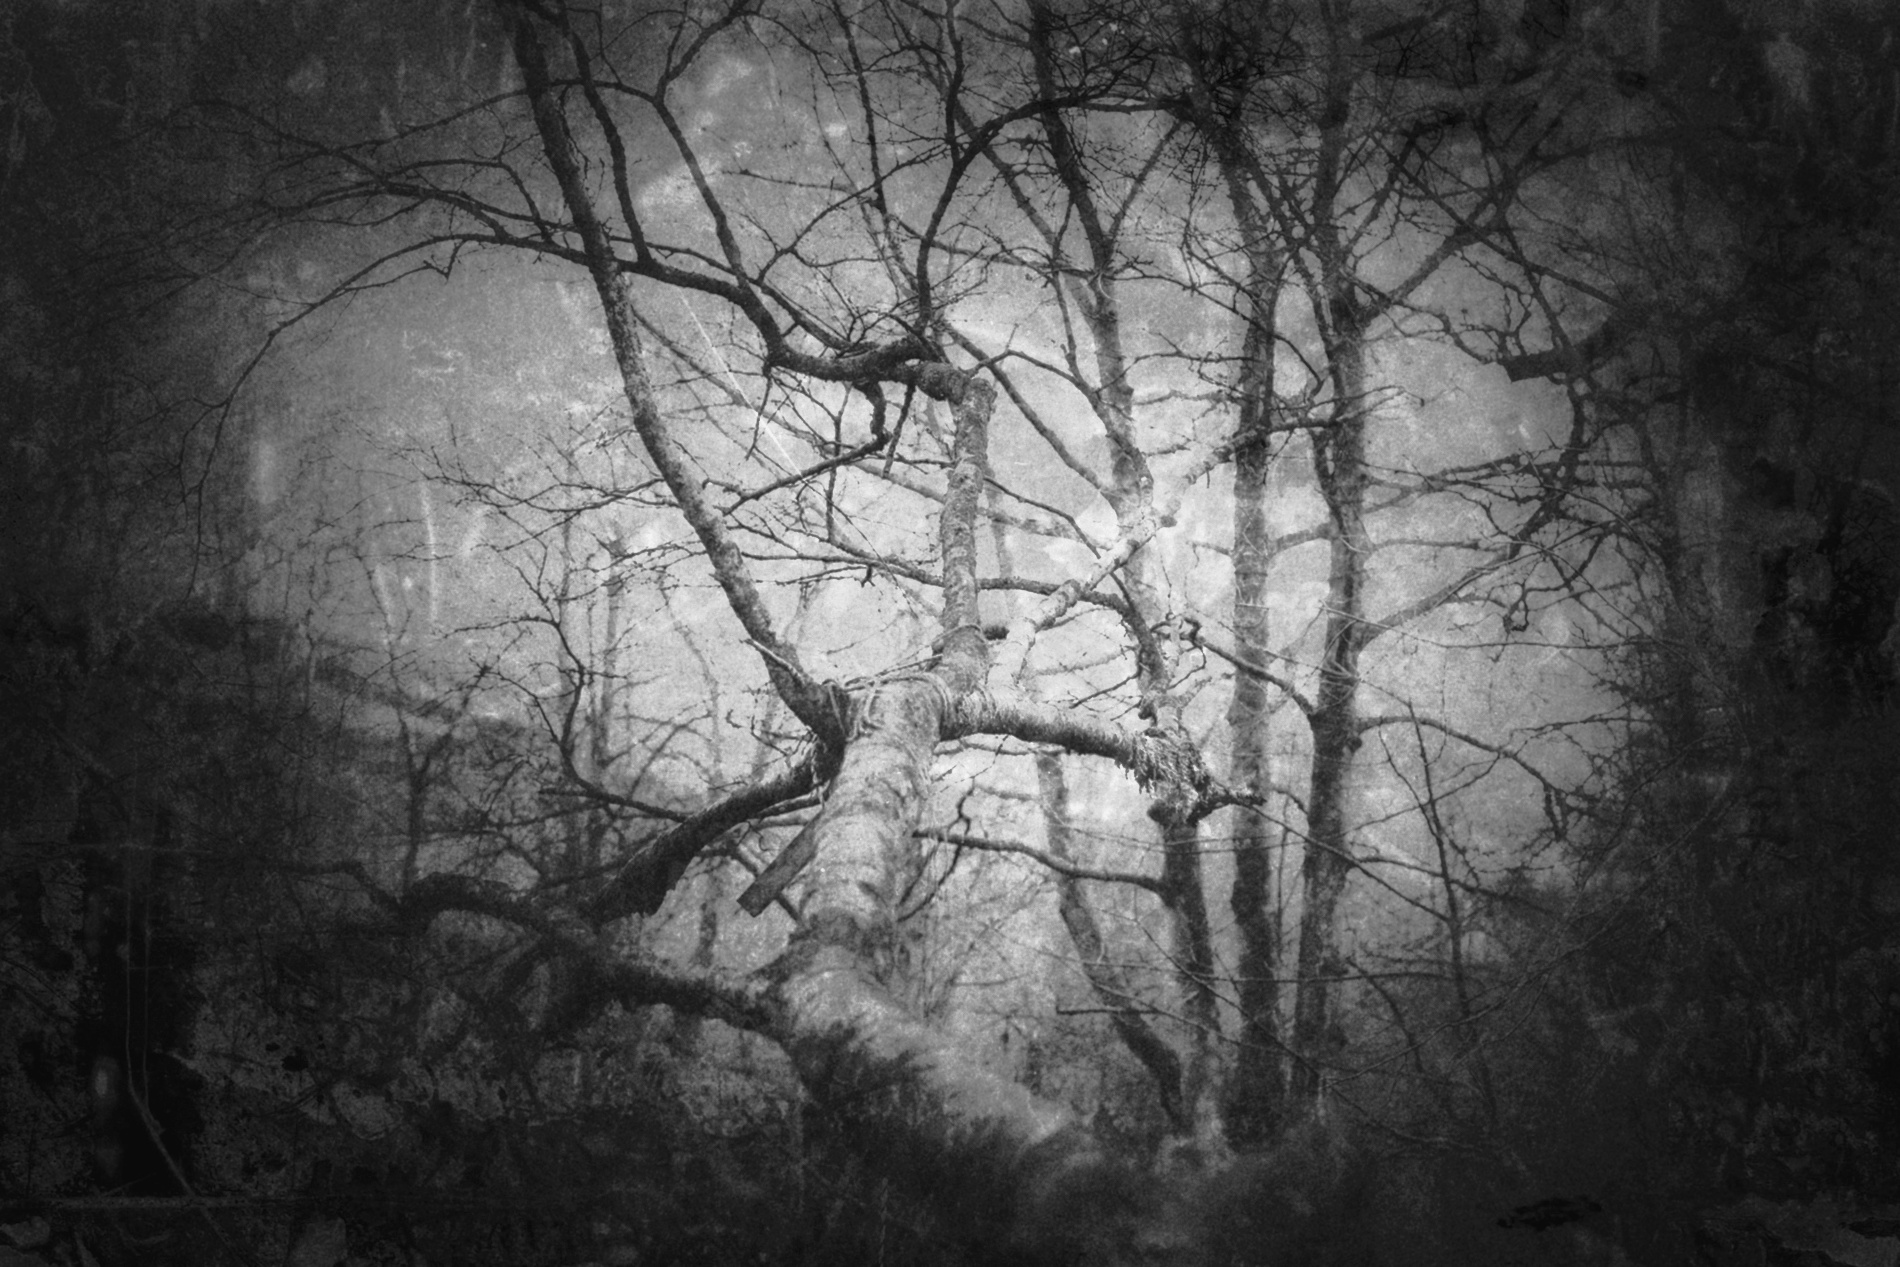 yorkshire-nature-bnw-tree-hebden-bridge-01